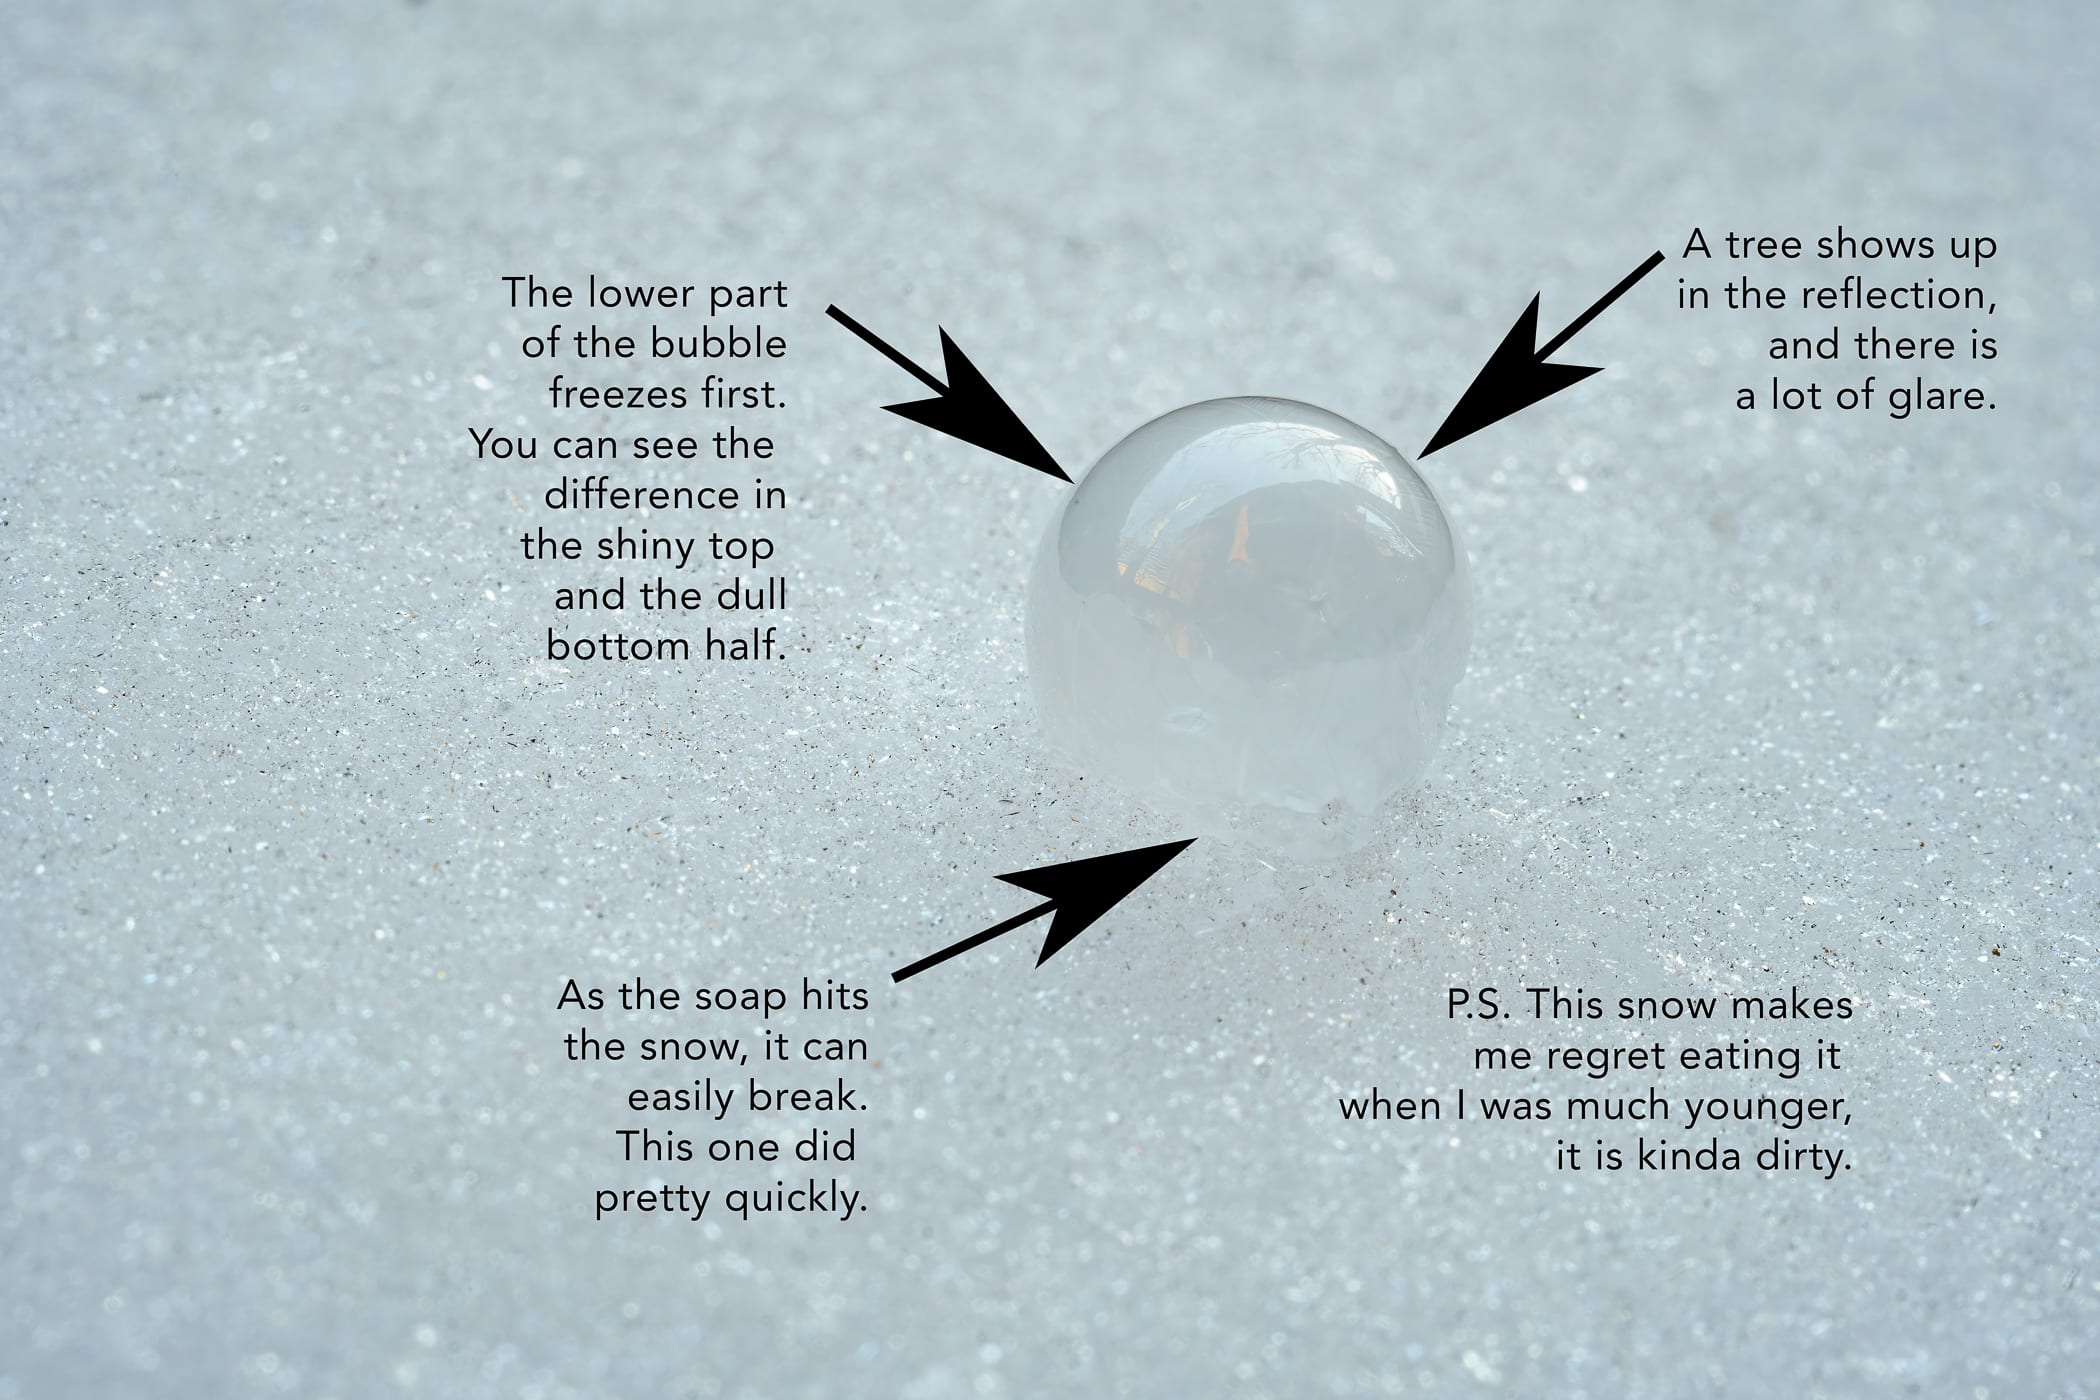 Soap bubble freezing with text